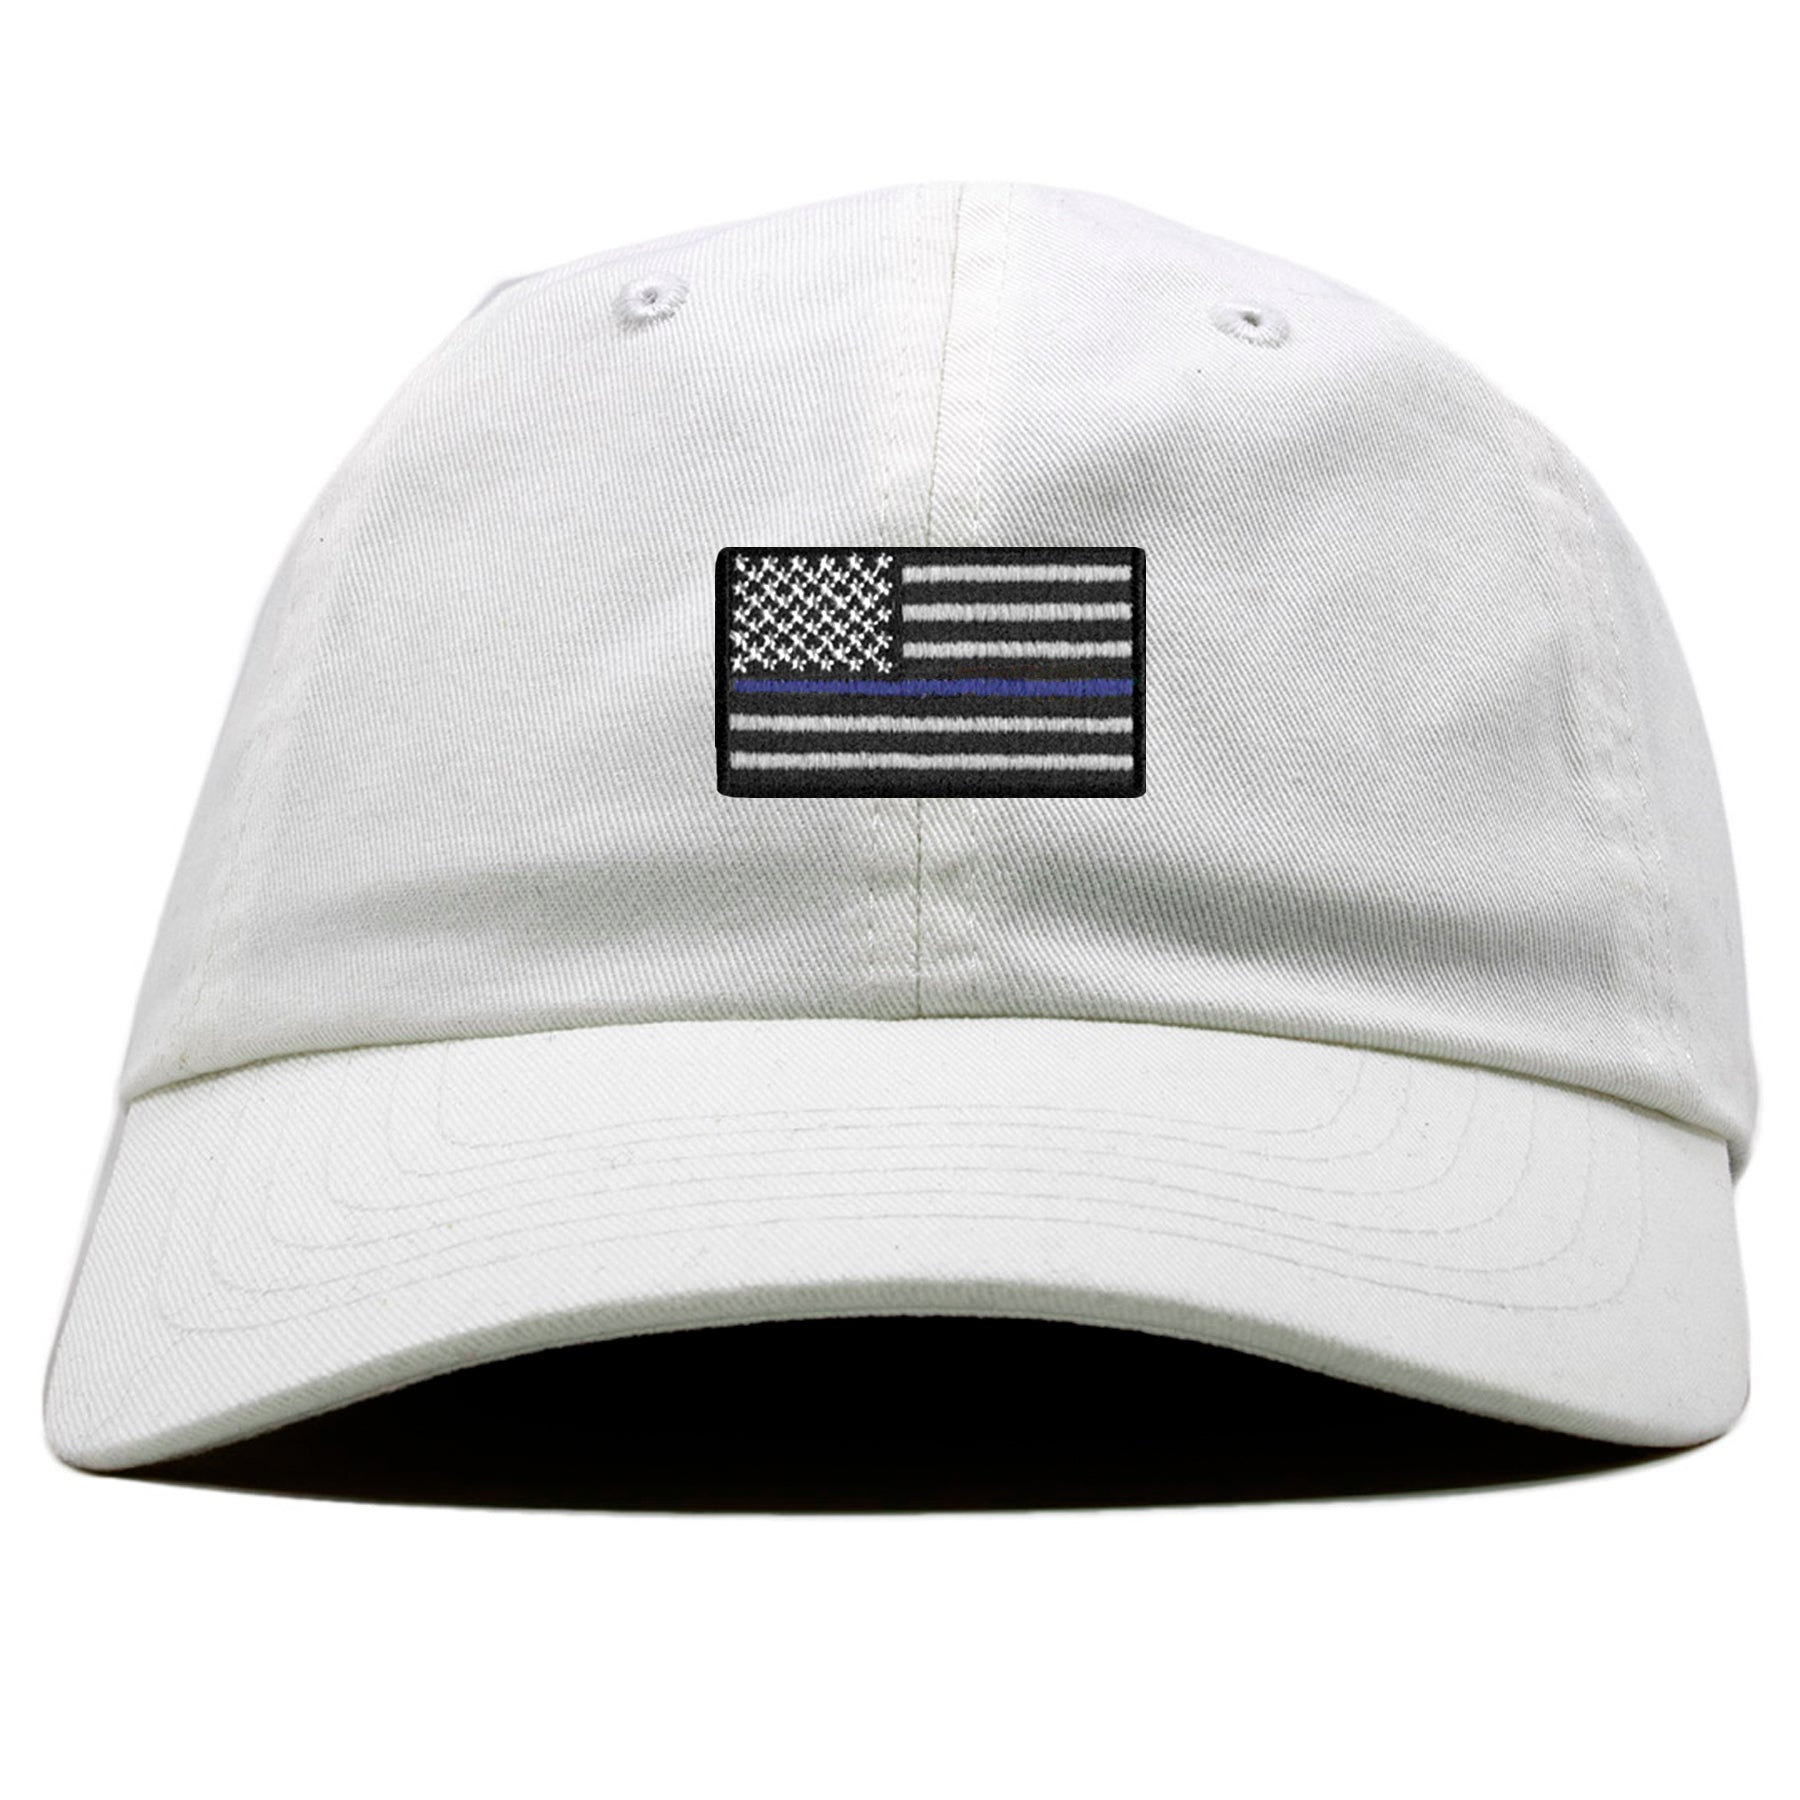 Blue Lives Matter Police Lives Matter Thin Blue Line White Dad Hat Cap Swag